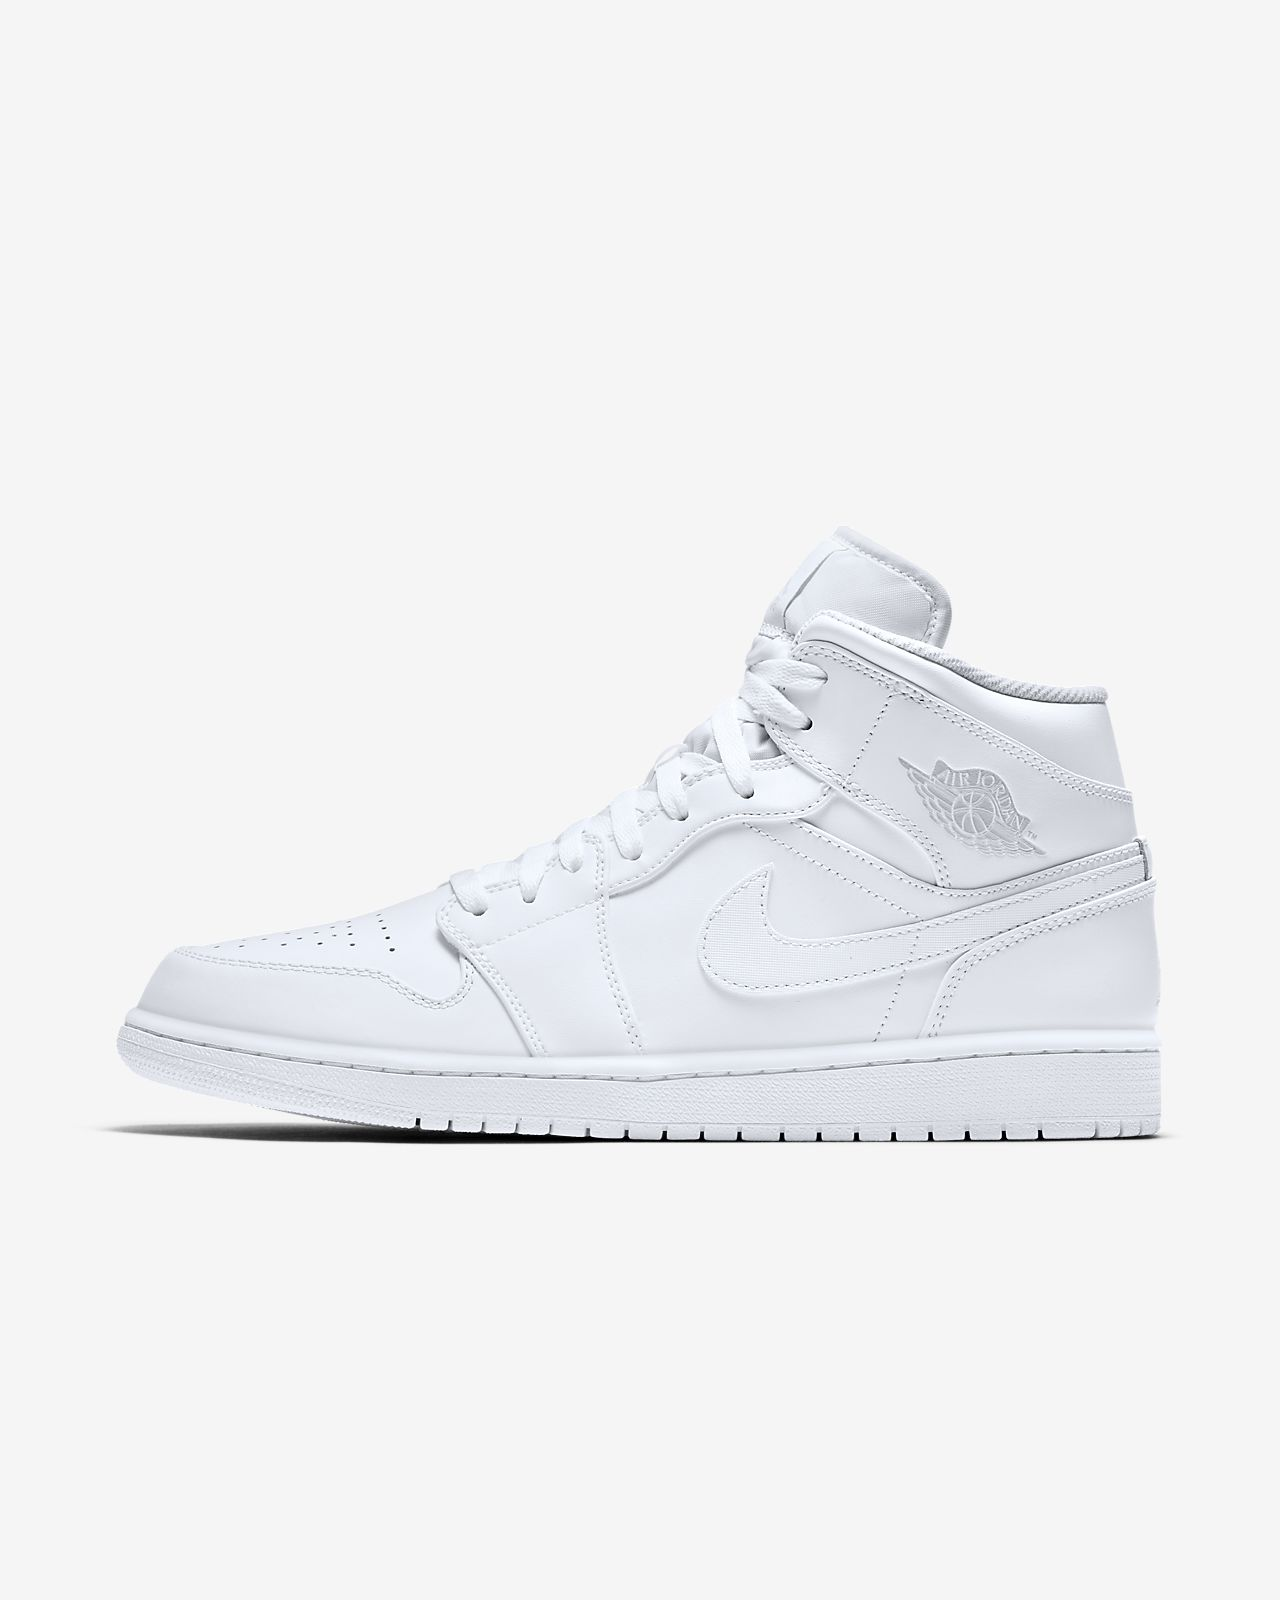 mens air jordan 1 shoes nz